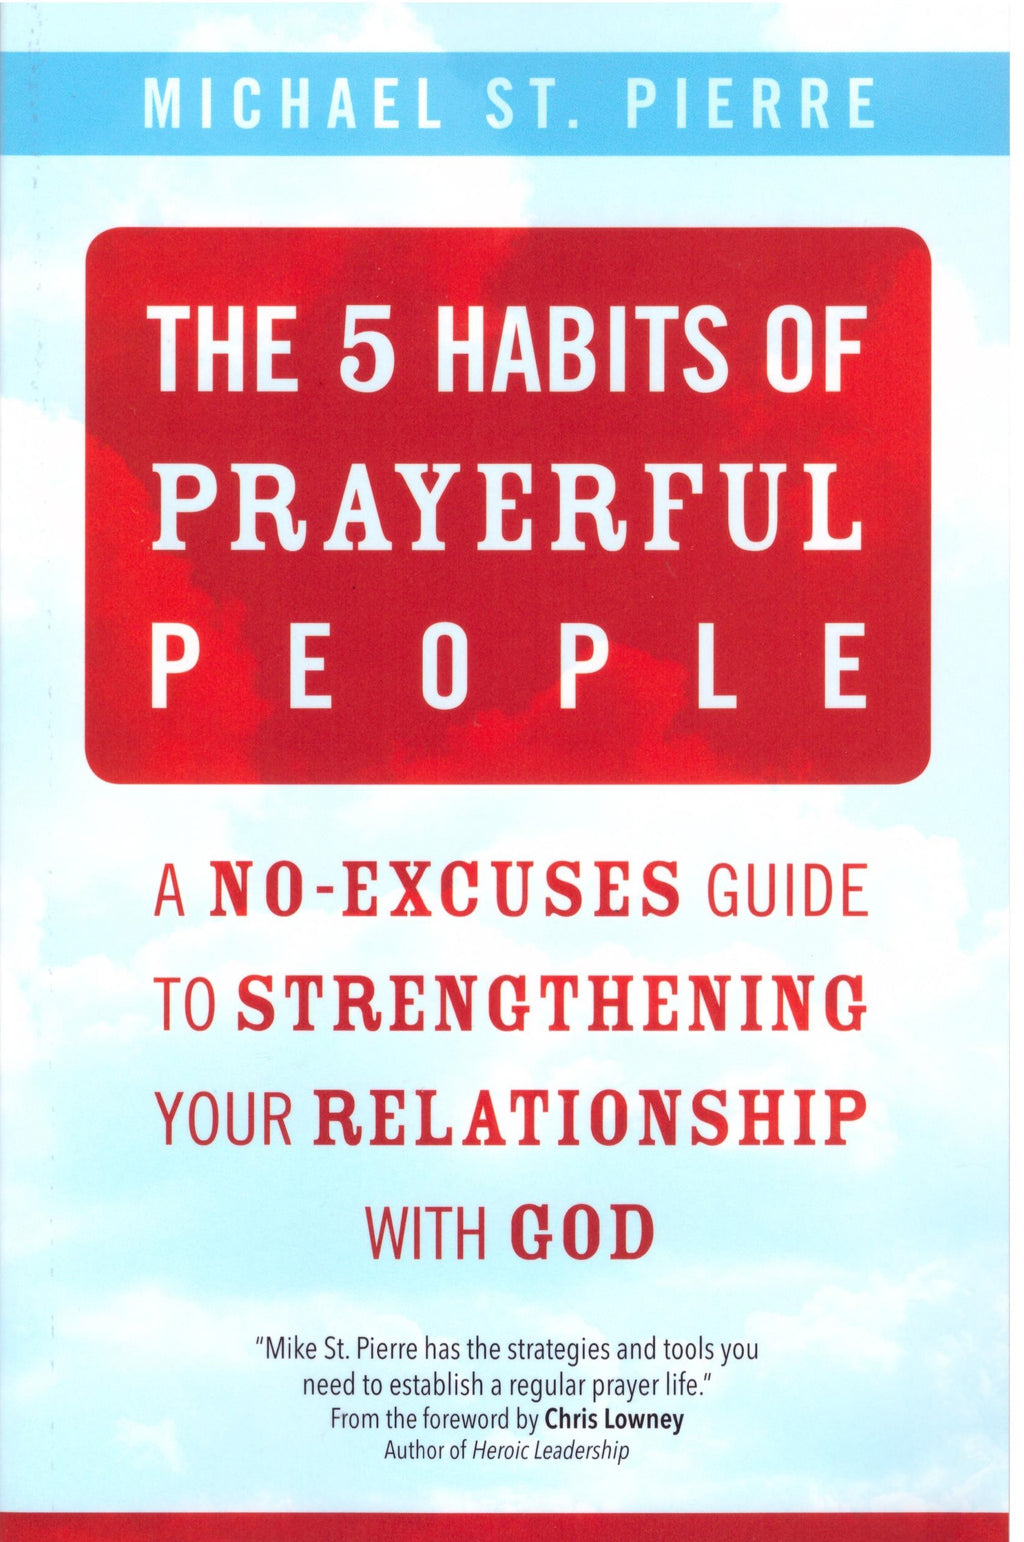 5 HABITS OF PRAYERFUL PEOPLE